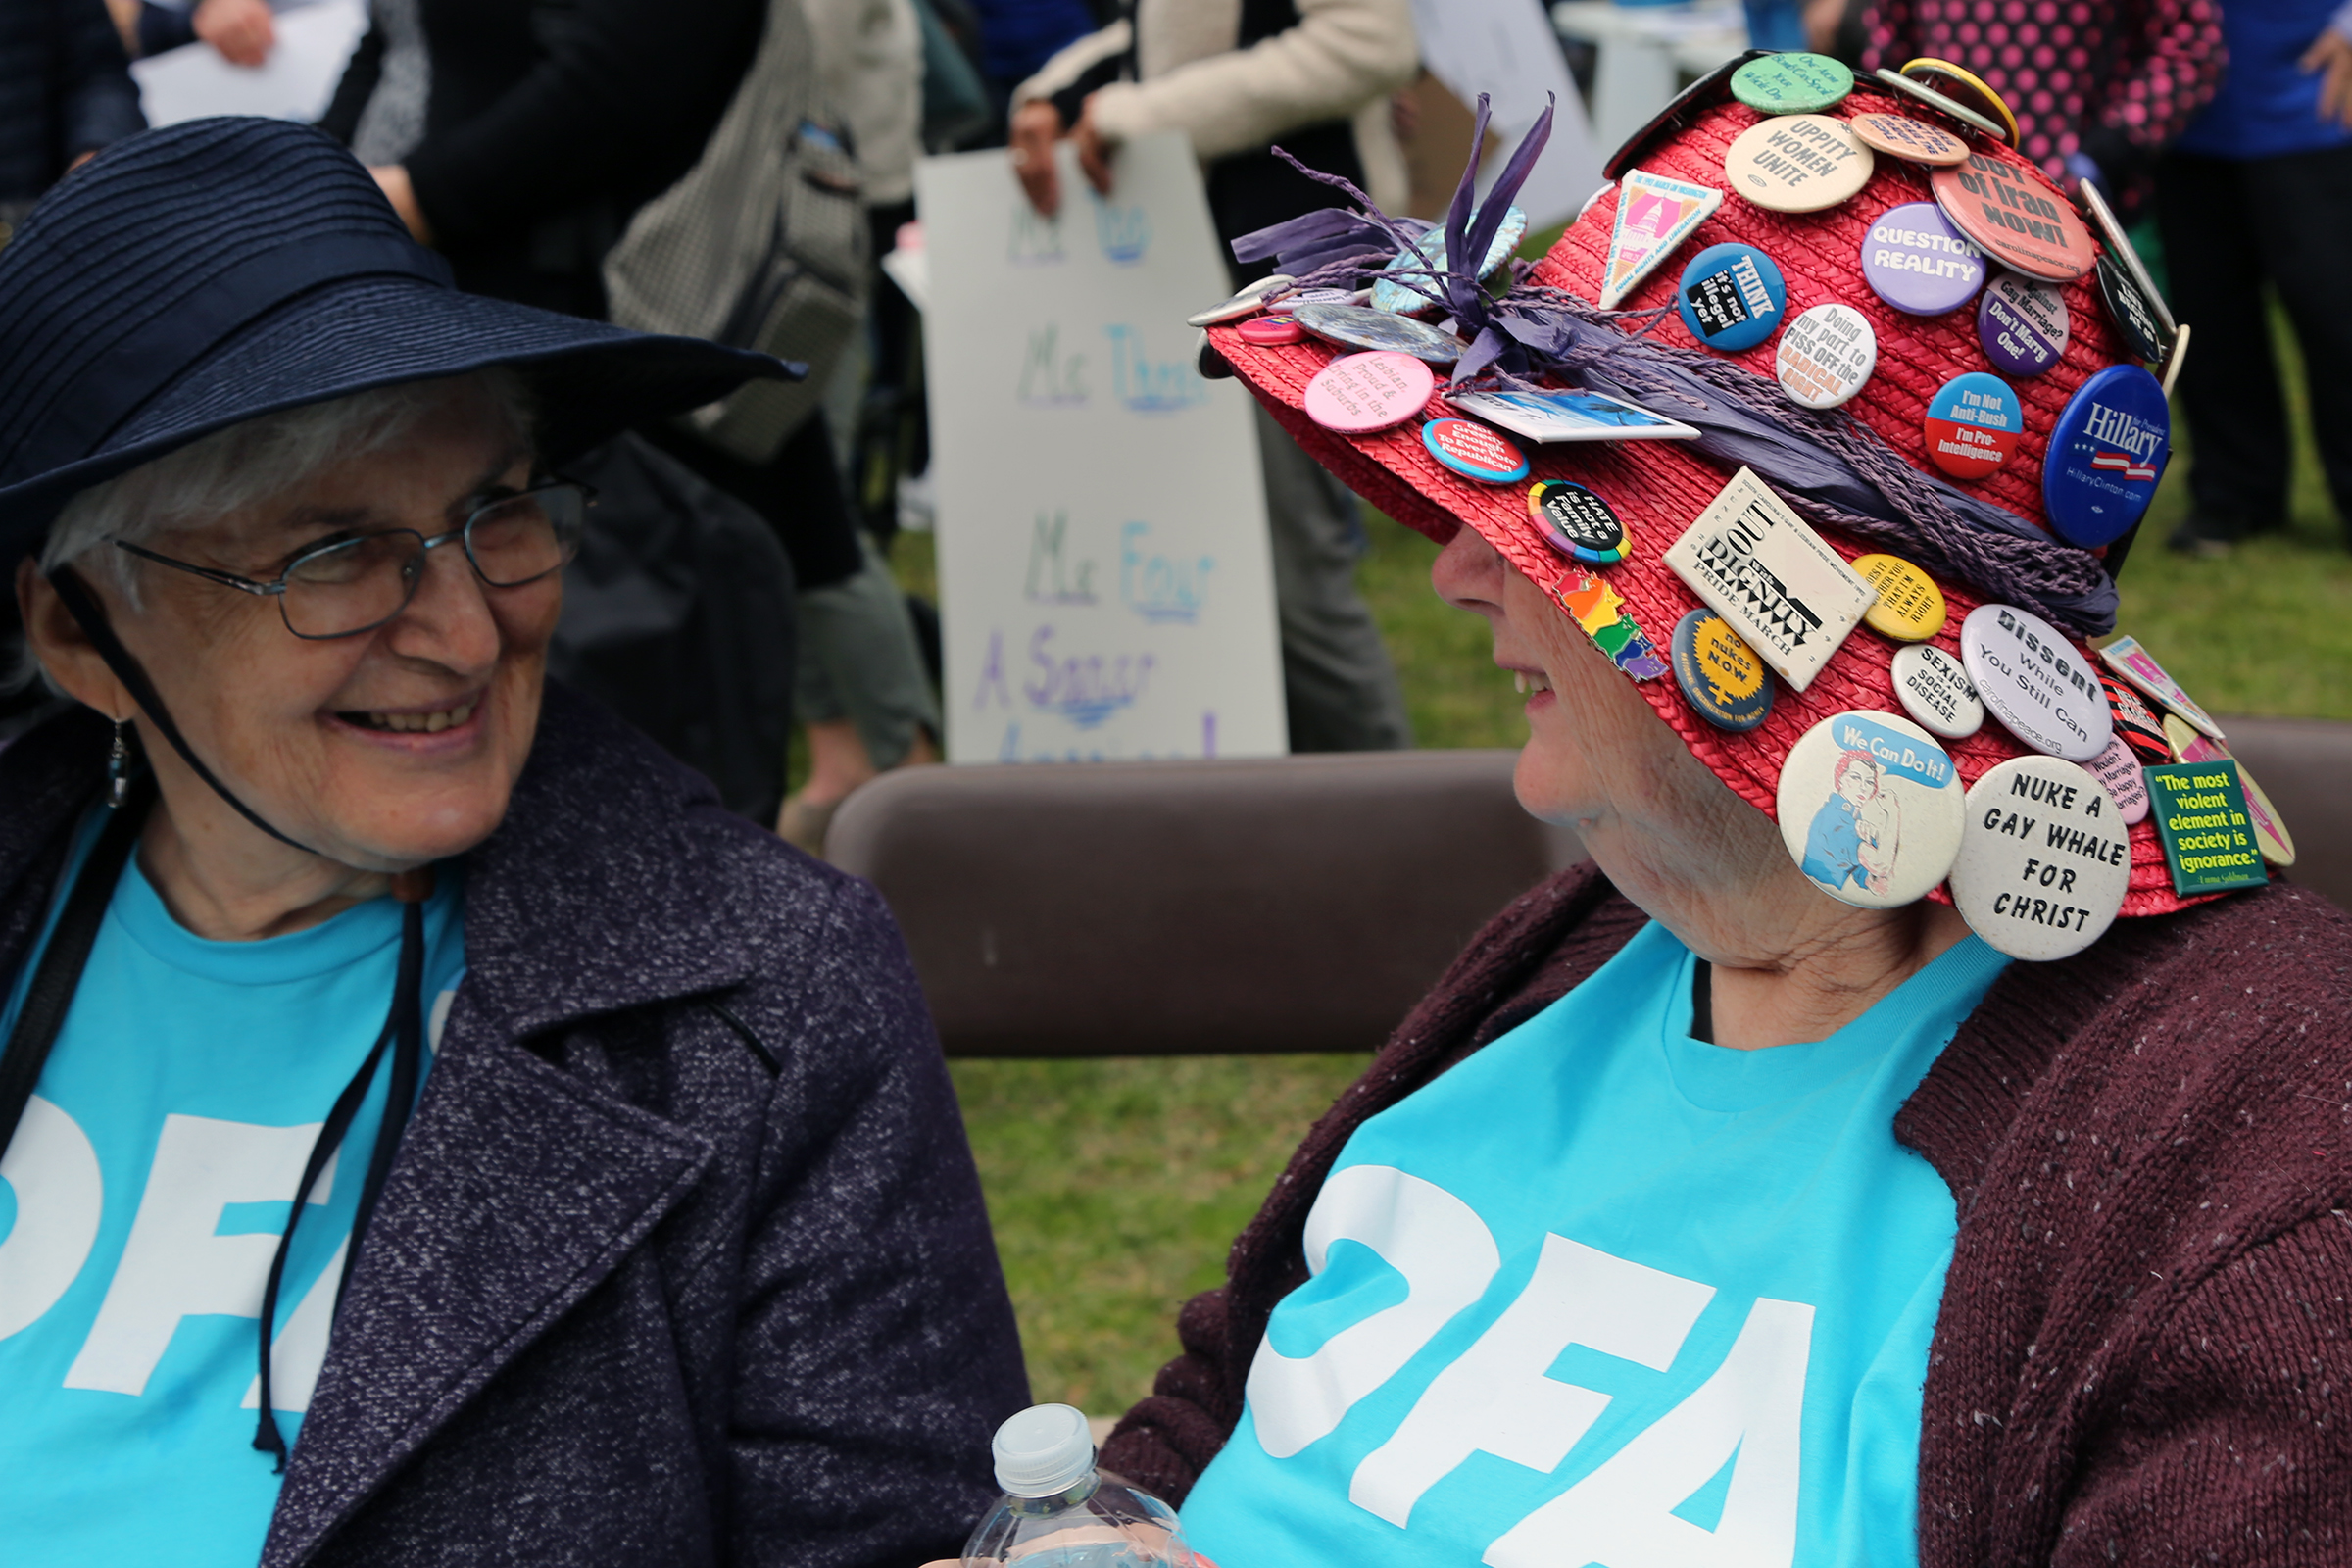 Nina Grey (left) and Peg Thompson (right) registered about 25 new voters at the march. Thompson has been collecting protest buttons for 40 years.